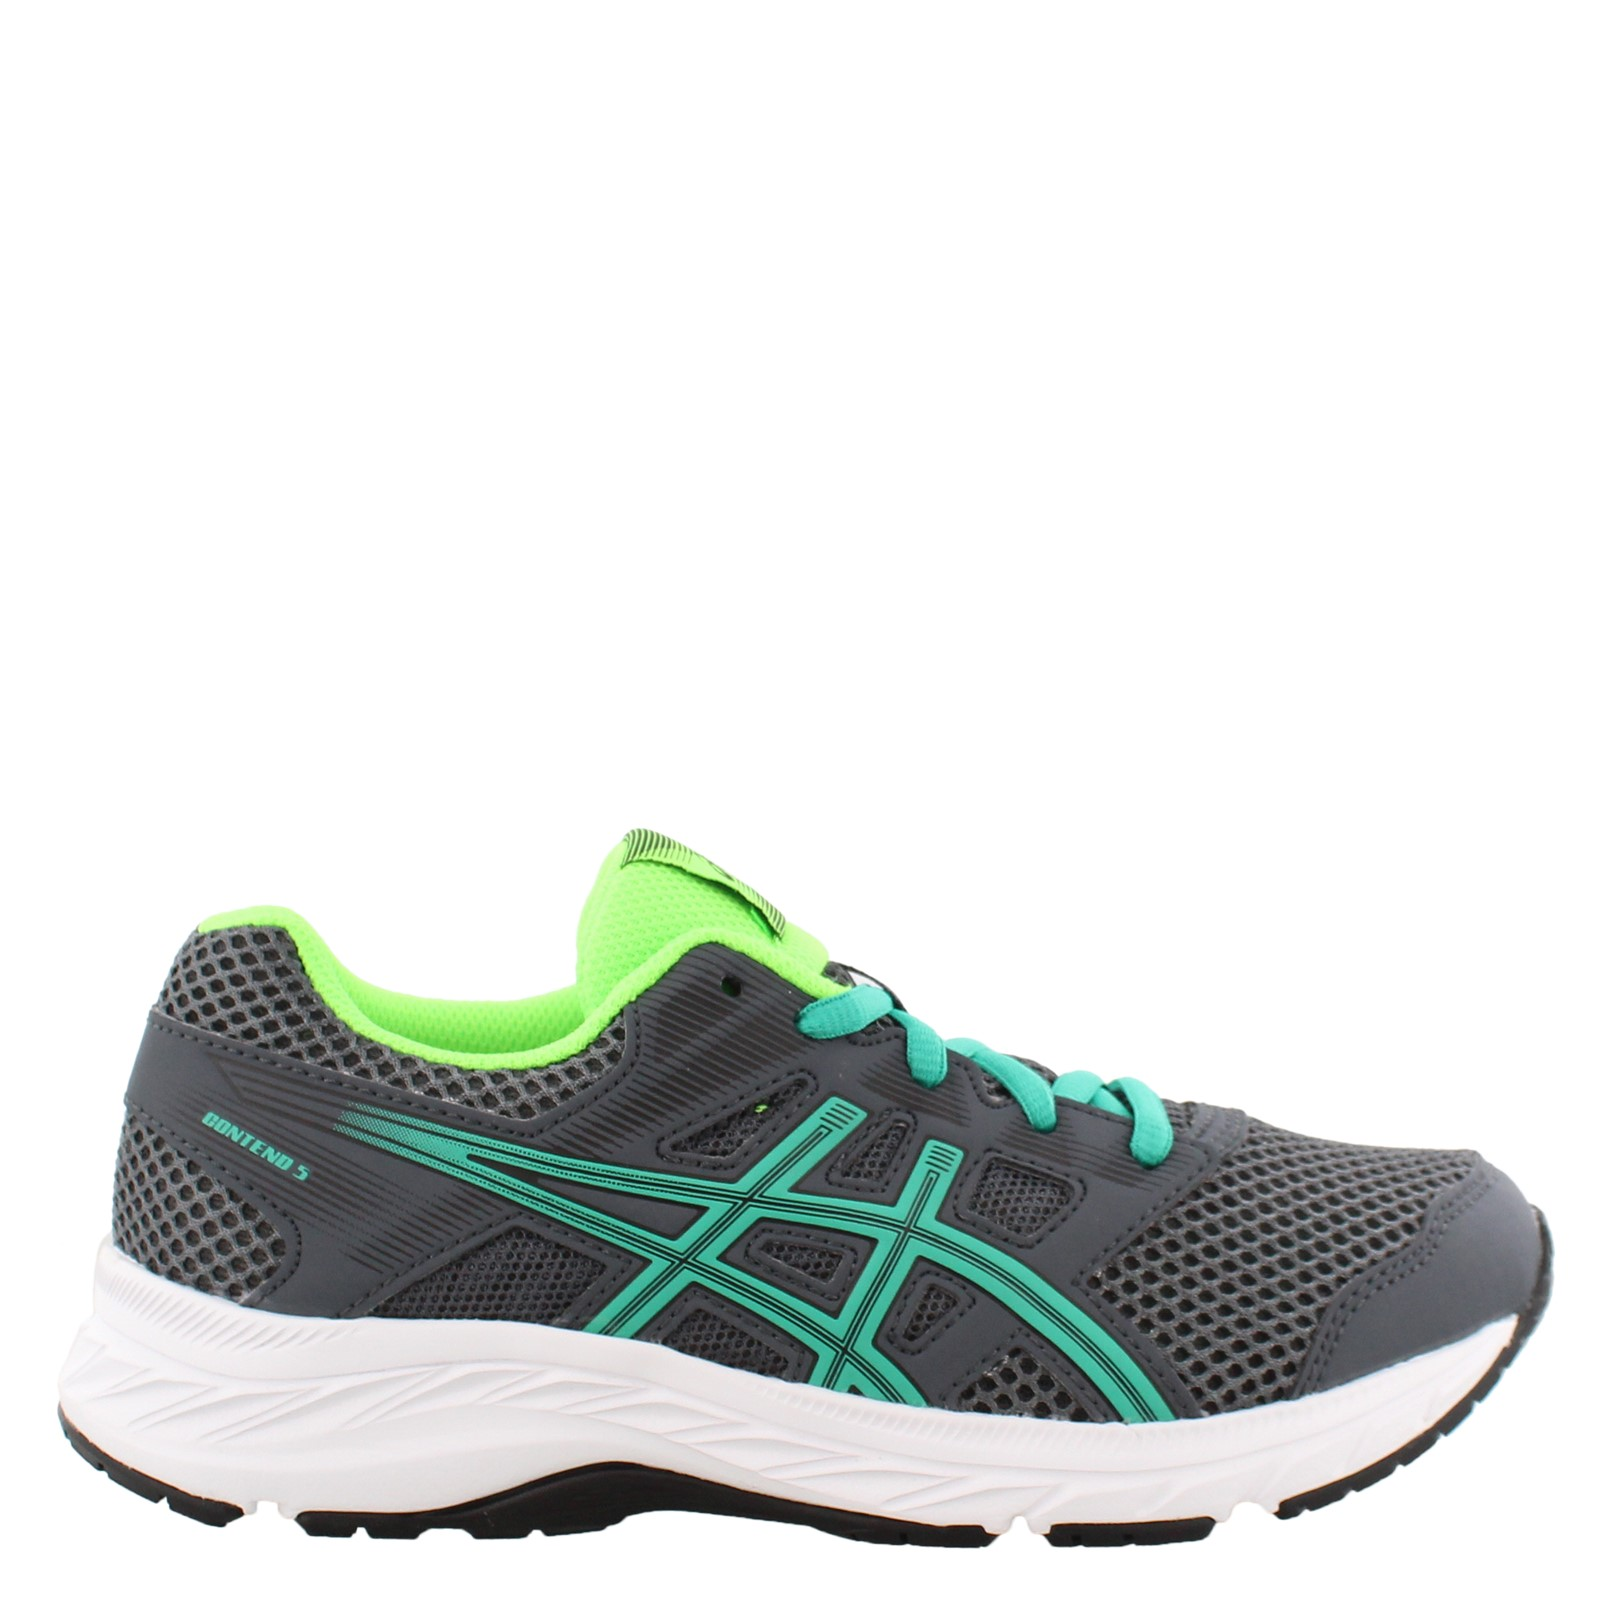 Boy's Asics, Gel Contend 5 GS Running Sneakers